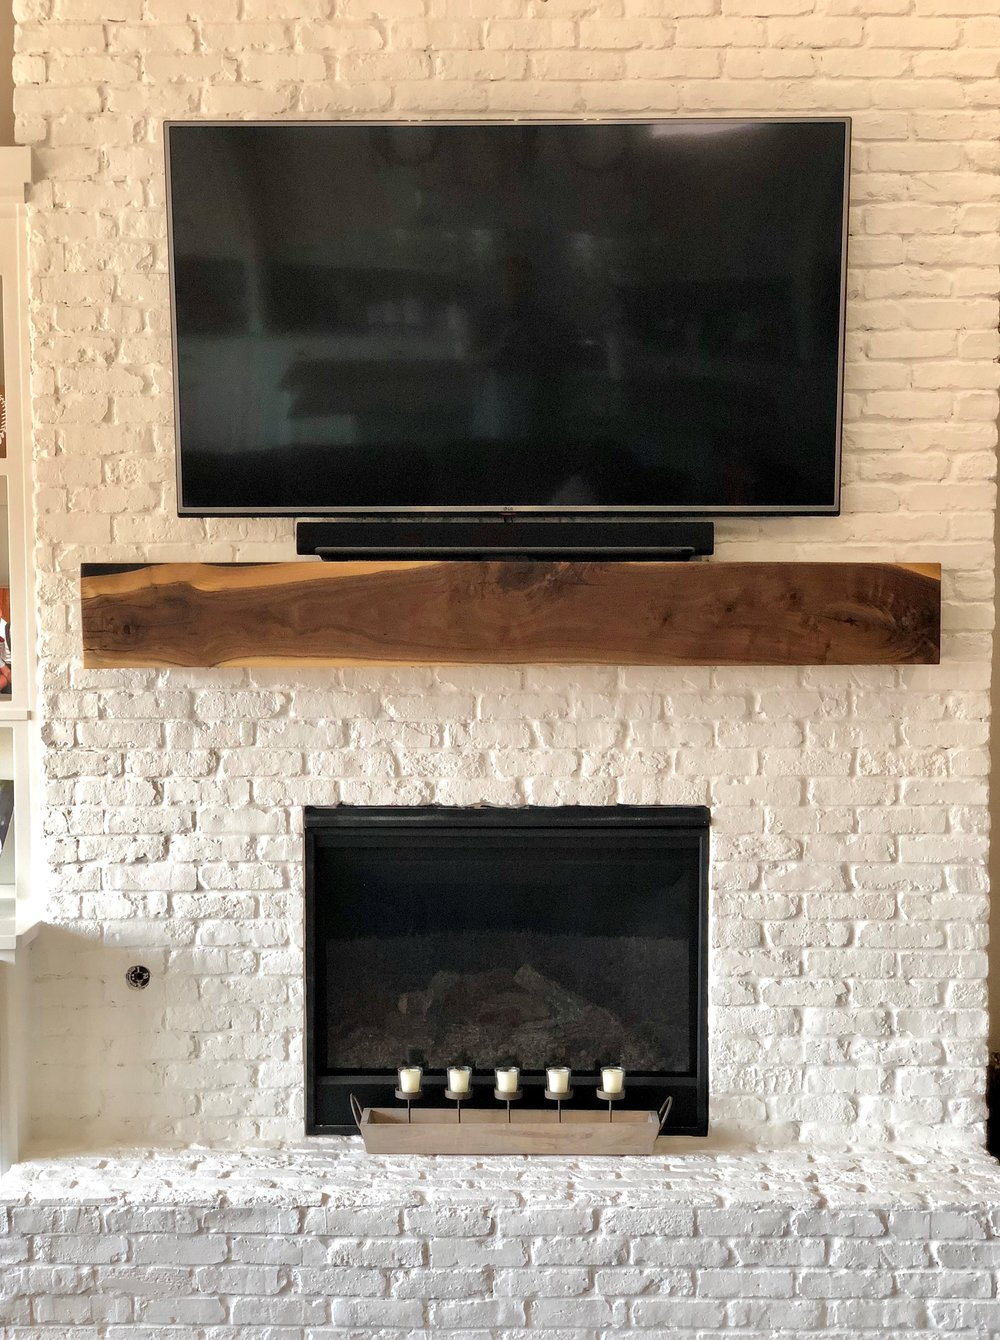 Brick Fireplace & Mantle.jpg